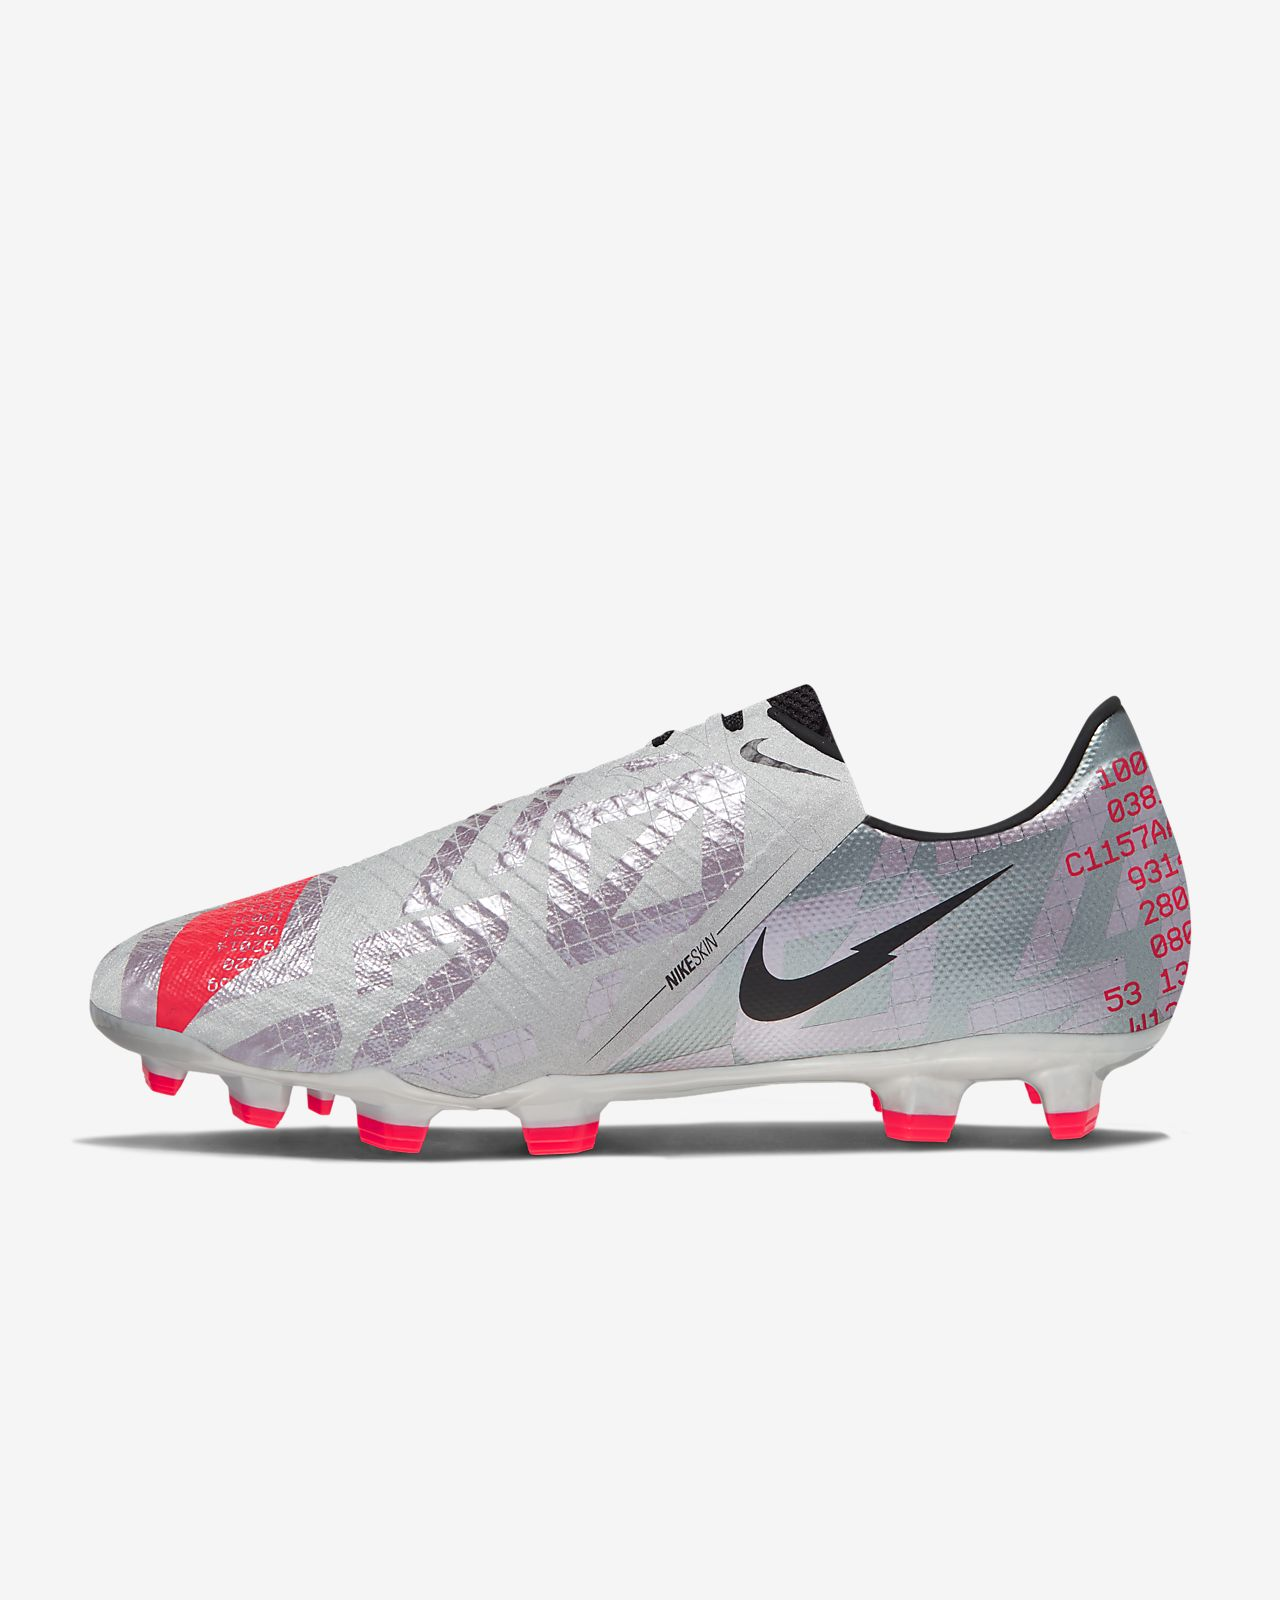 Nike Phantom Venom Academy FG Firm-Ground Soccer Cleat